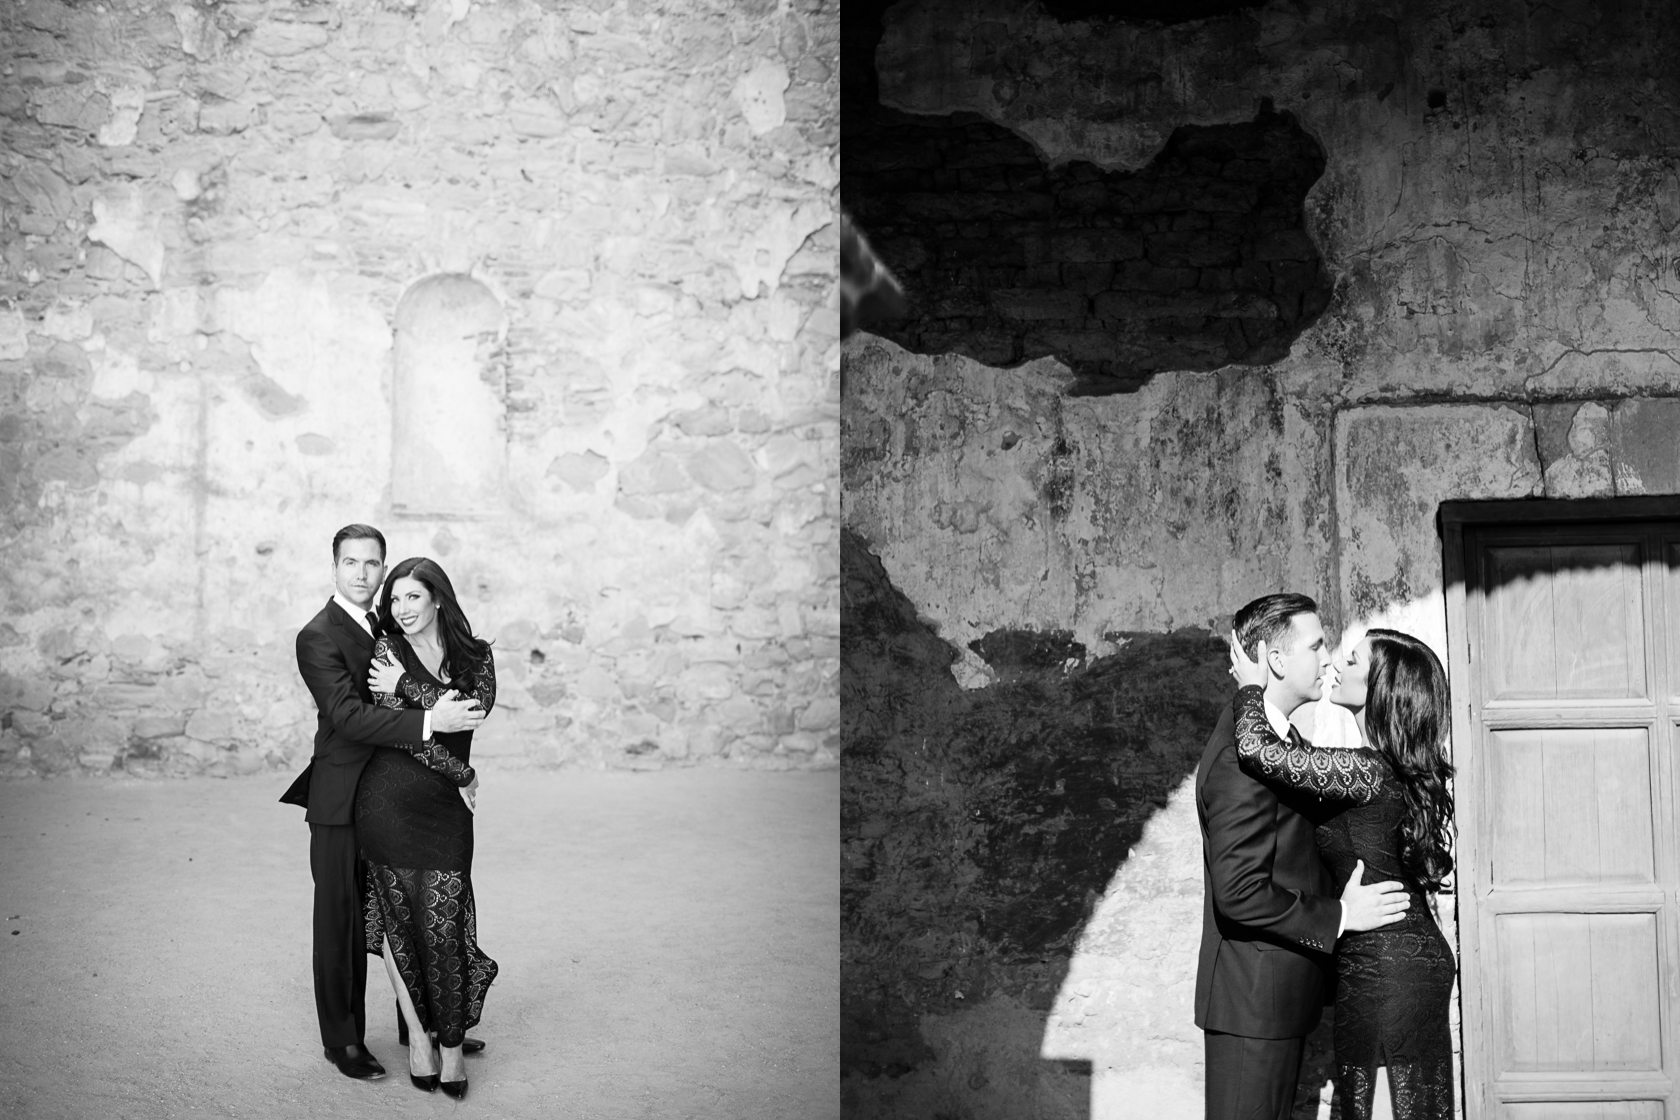 Mission_San_Juan_Capistrano_Engagement_Session_10.jpg